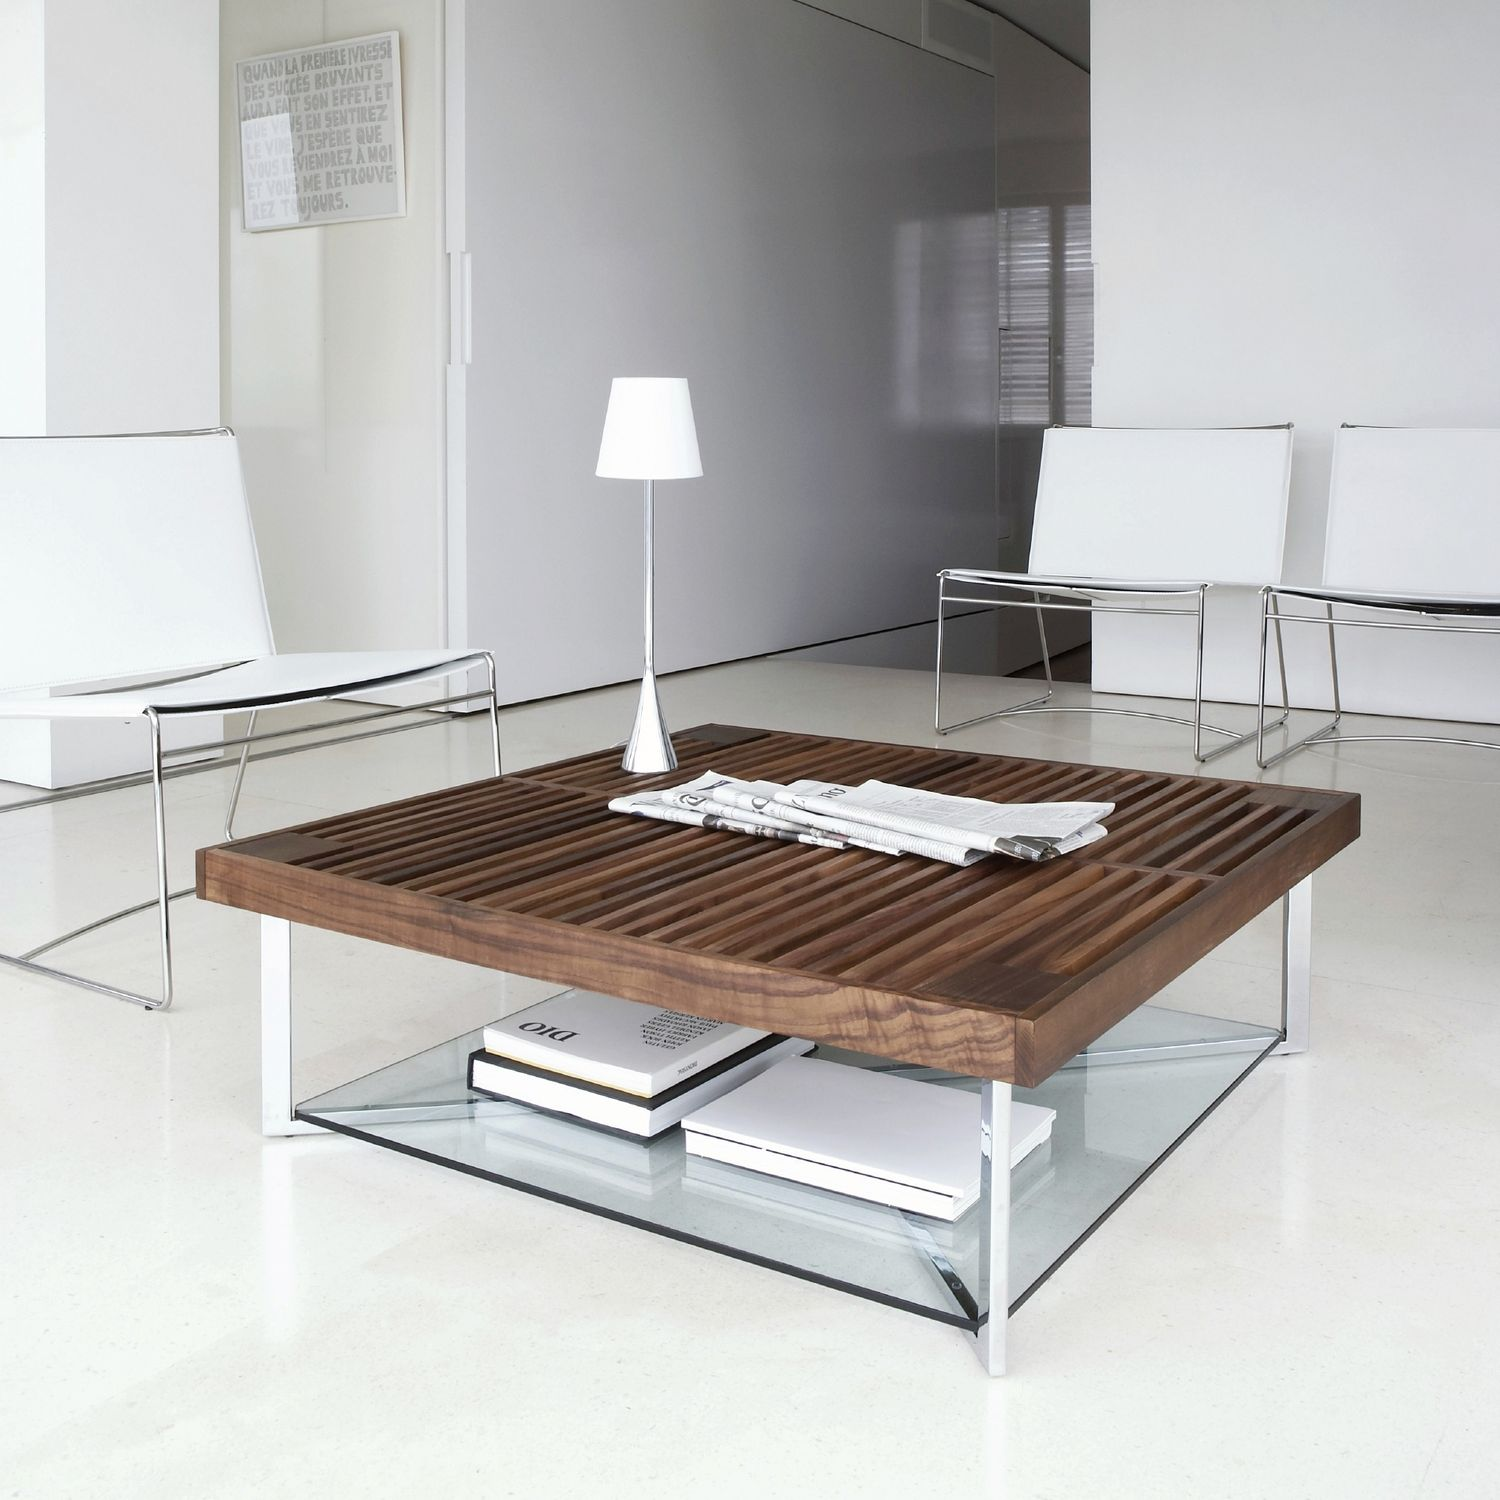 Table Noyer Design Contemporary Coffee Table Walnut Tempered Glass Chrome Steel